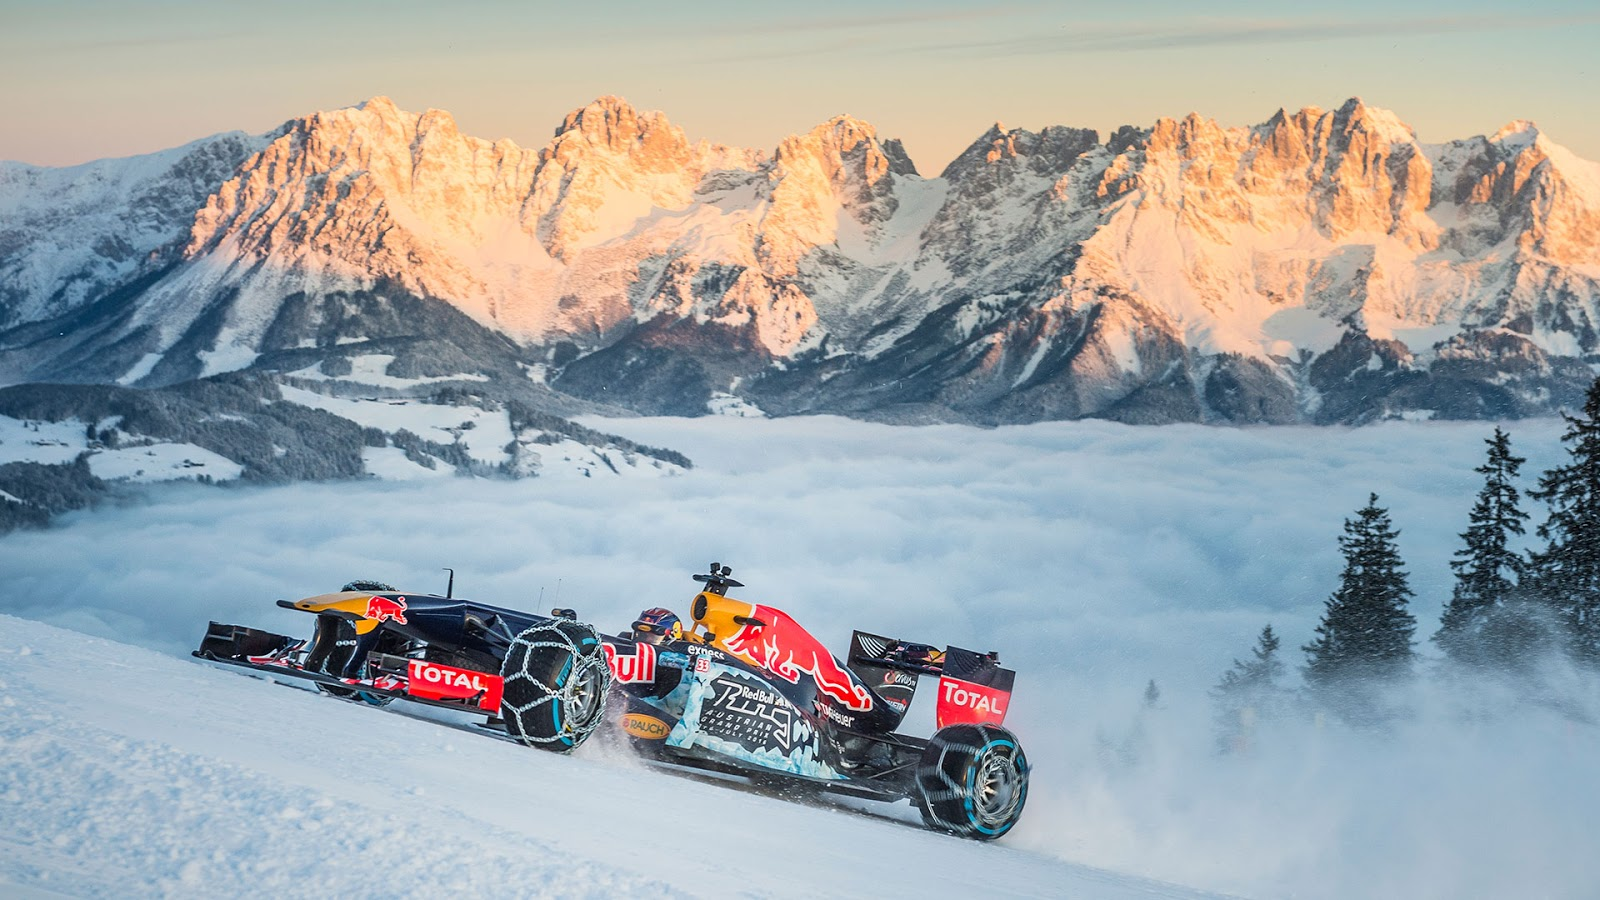 Red Bull F1 On The Ski Slopes